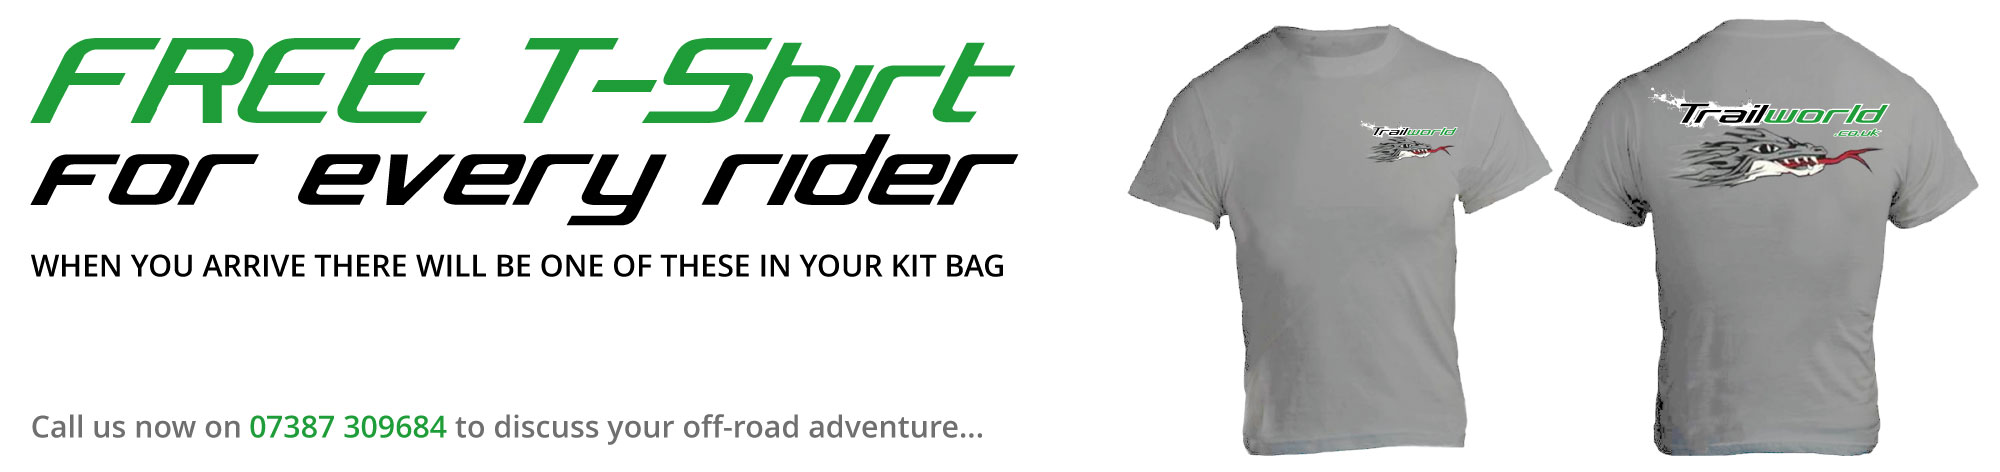 FREE Cotton T-Shirt for every rider